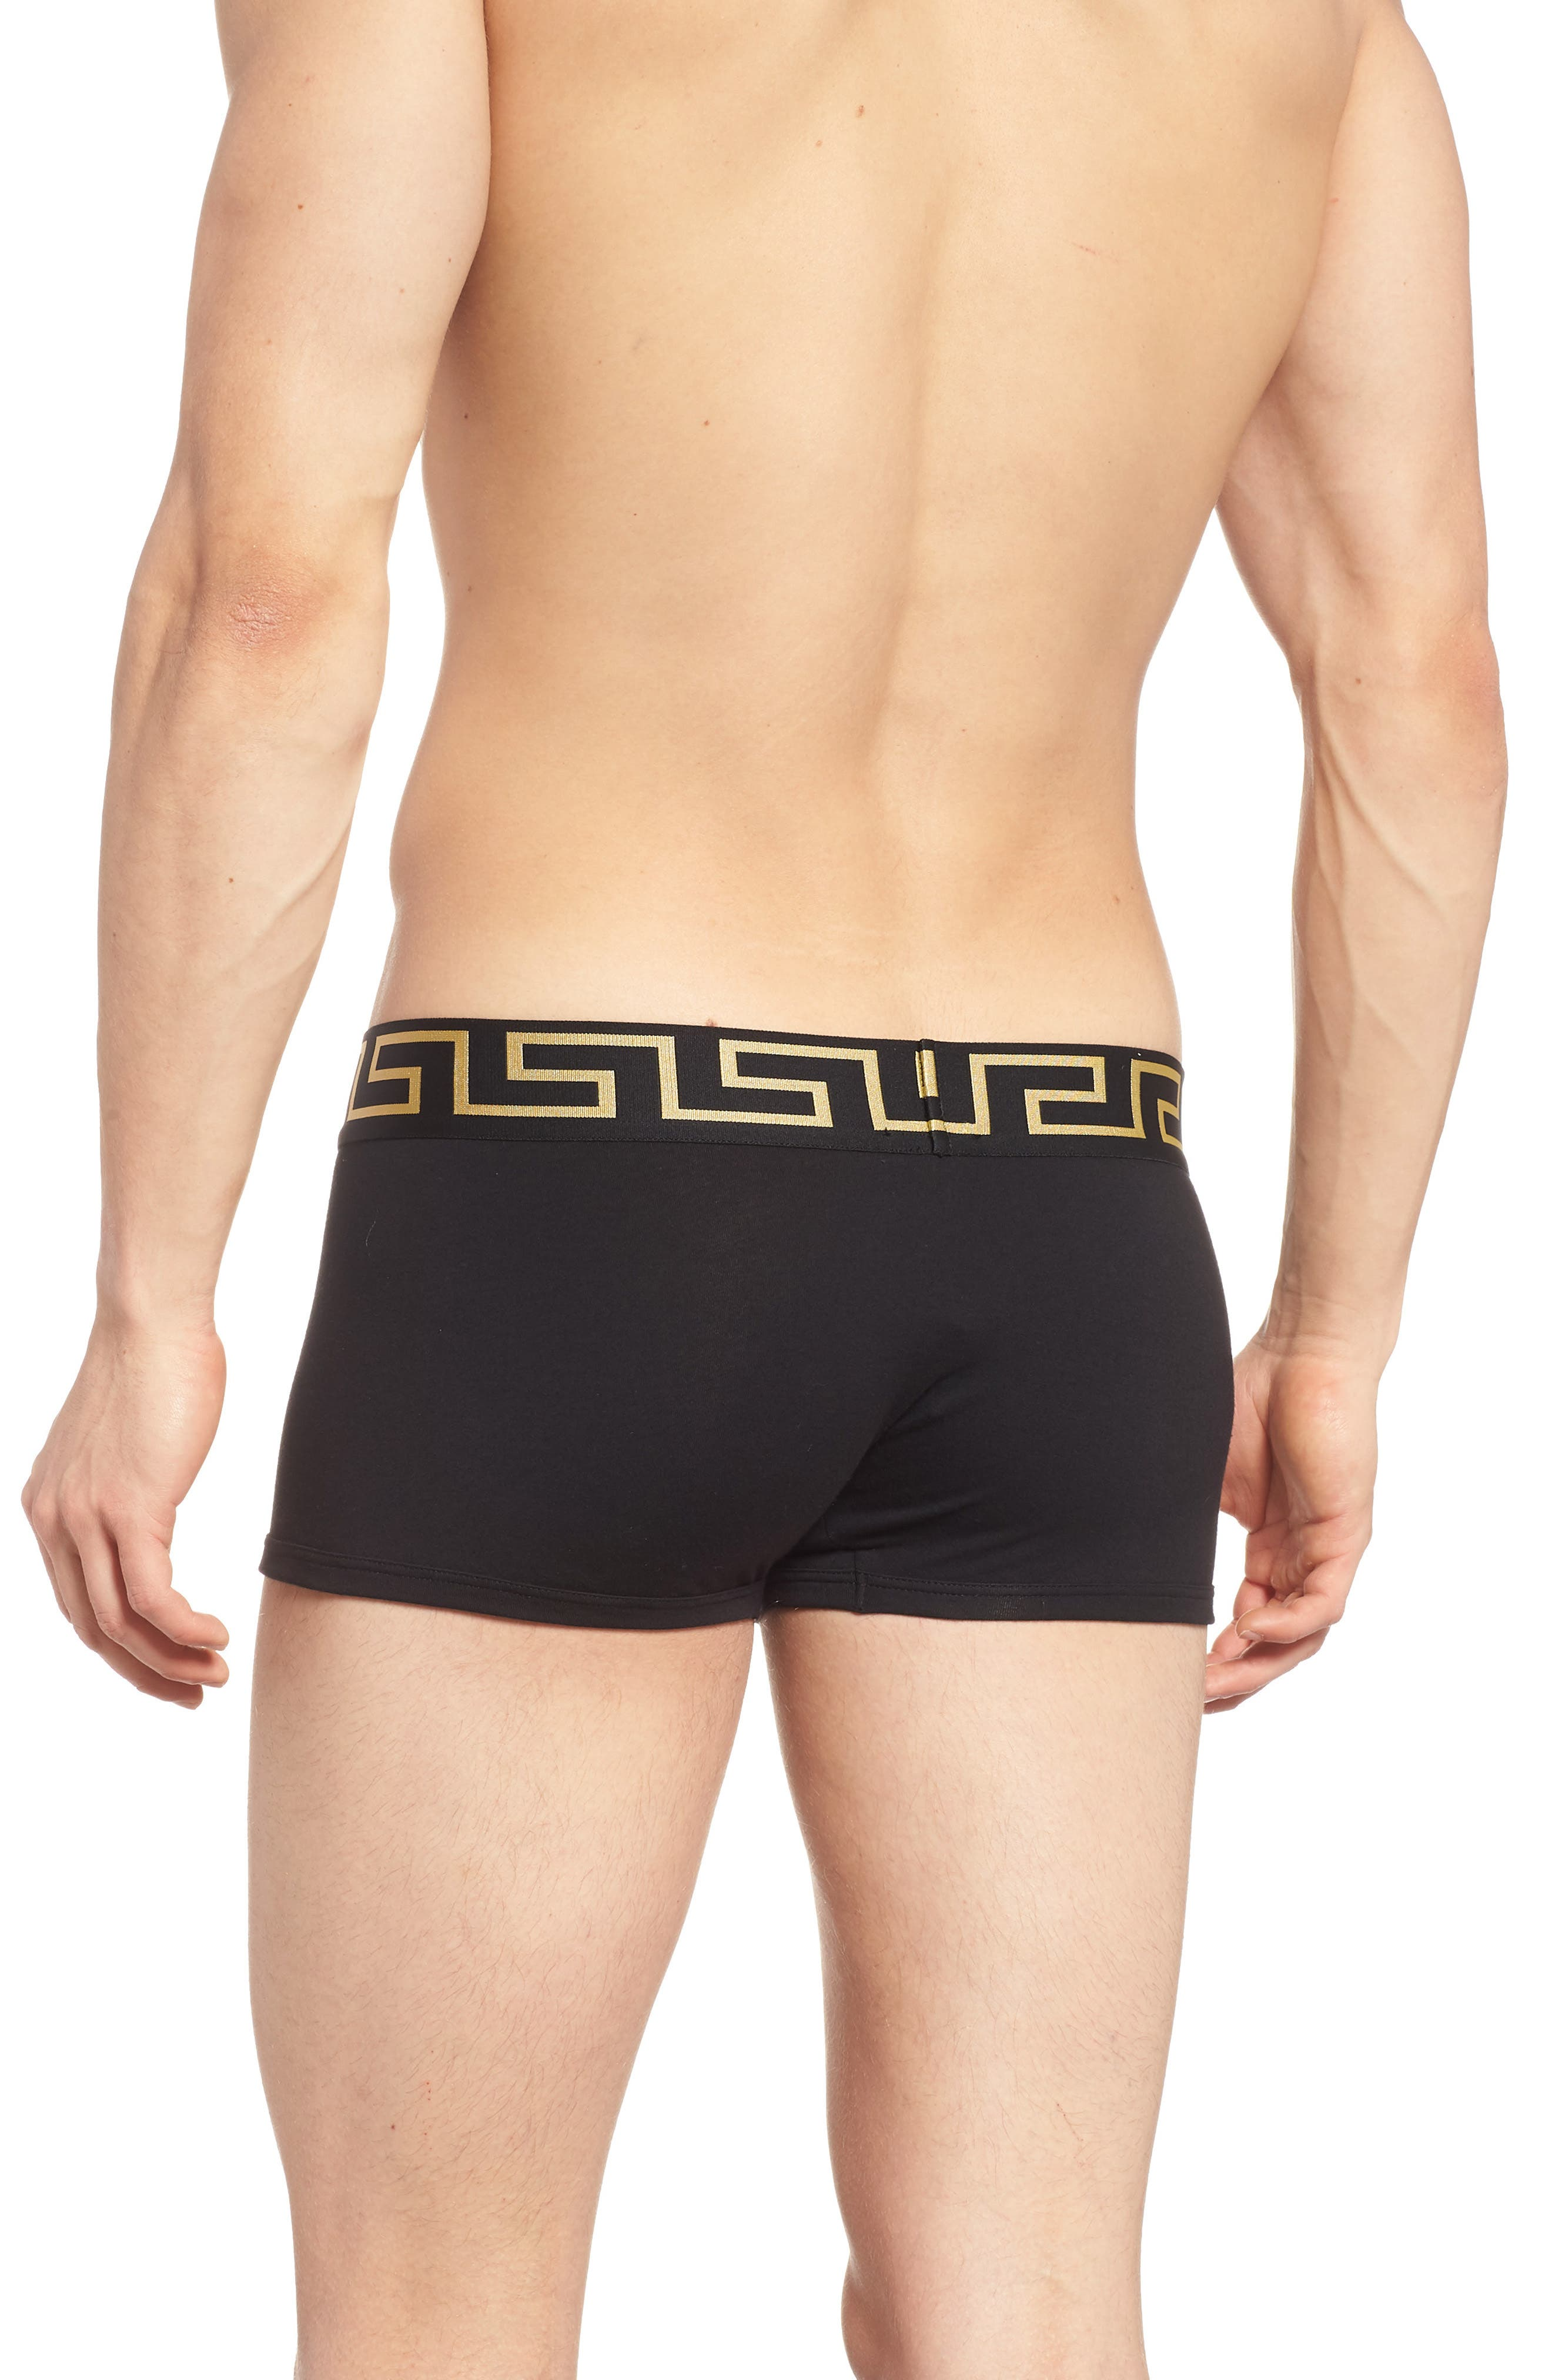 Versace Collection 2-Pack Low Rise Trunks,                             Alternate thumbnail 2, color,                             Black/ Gold